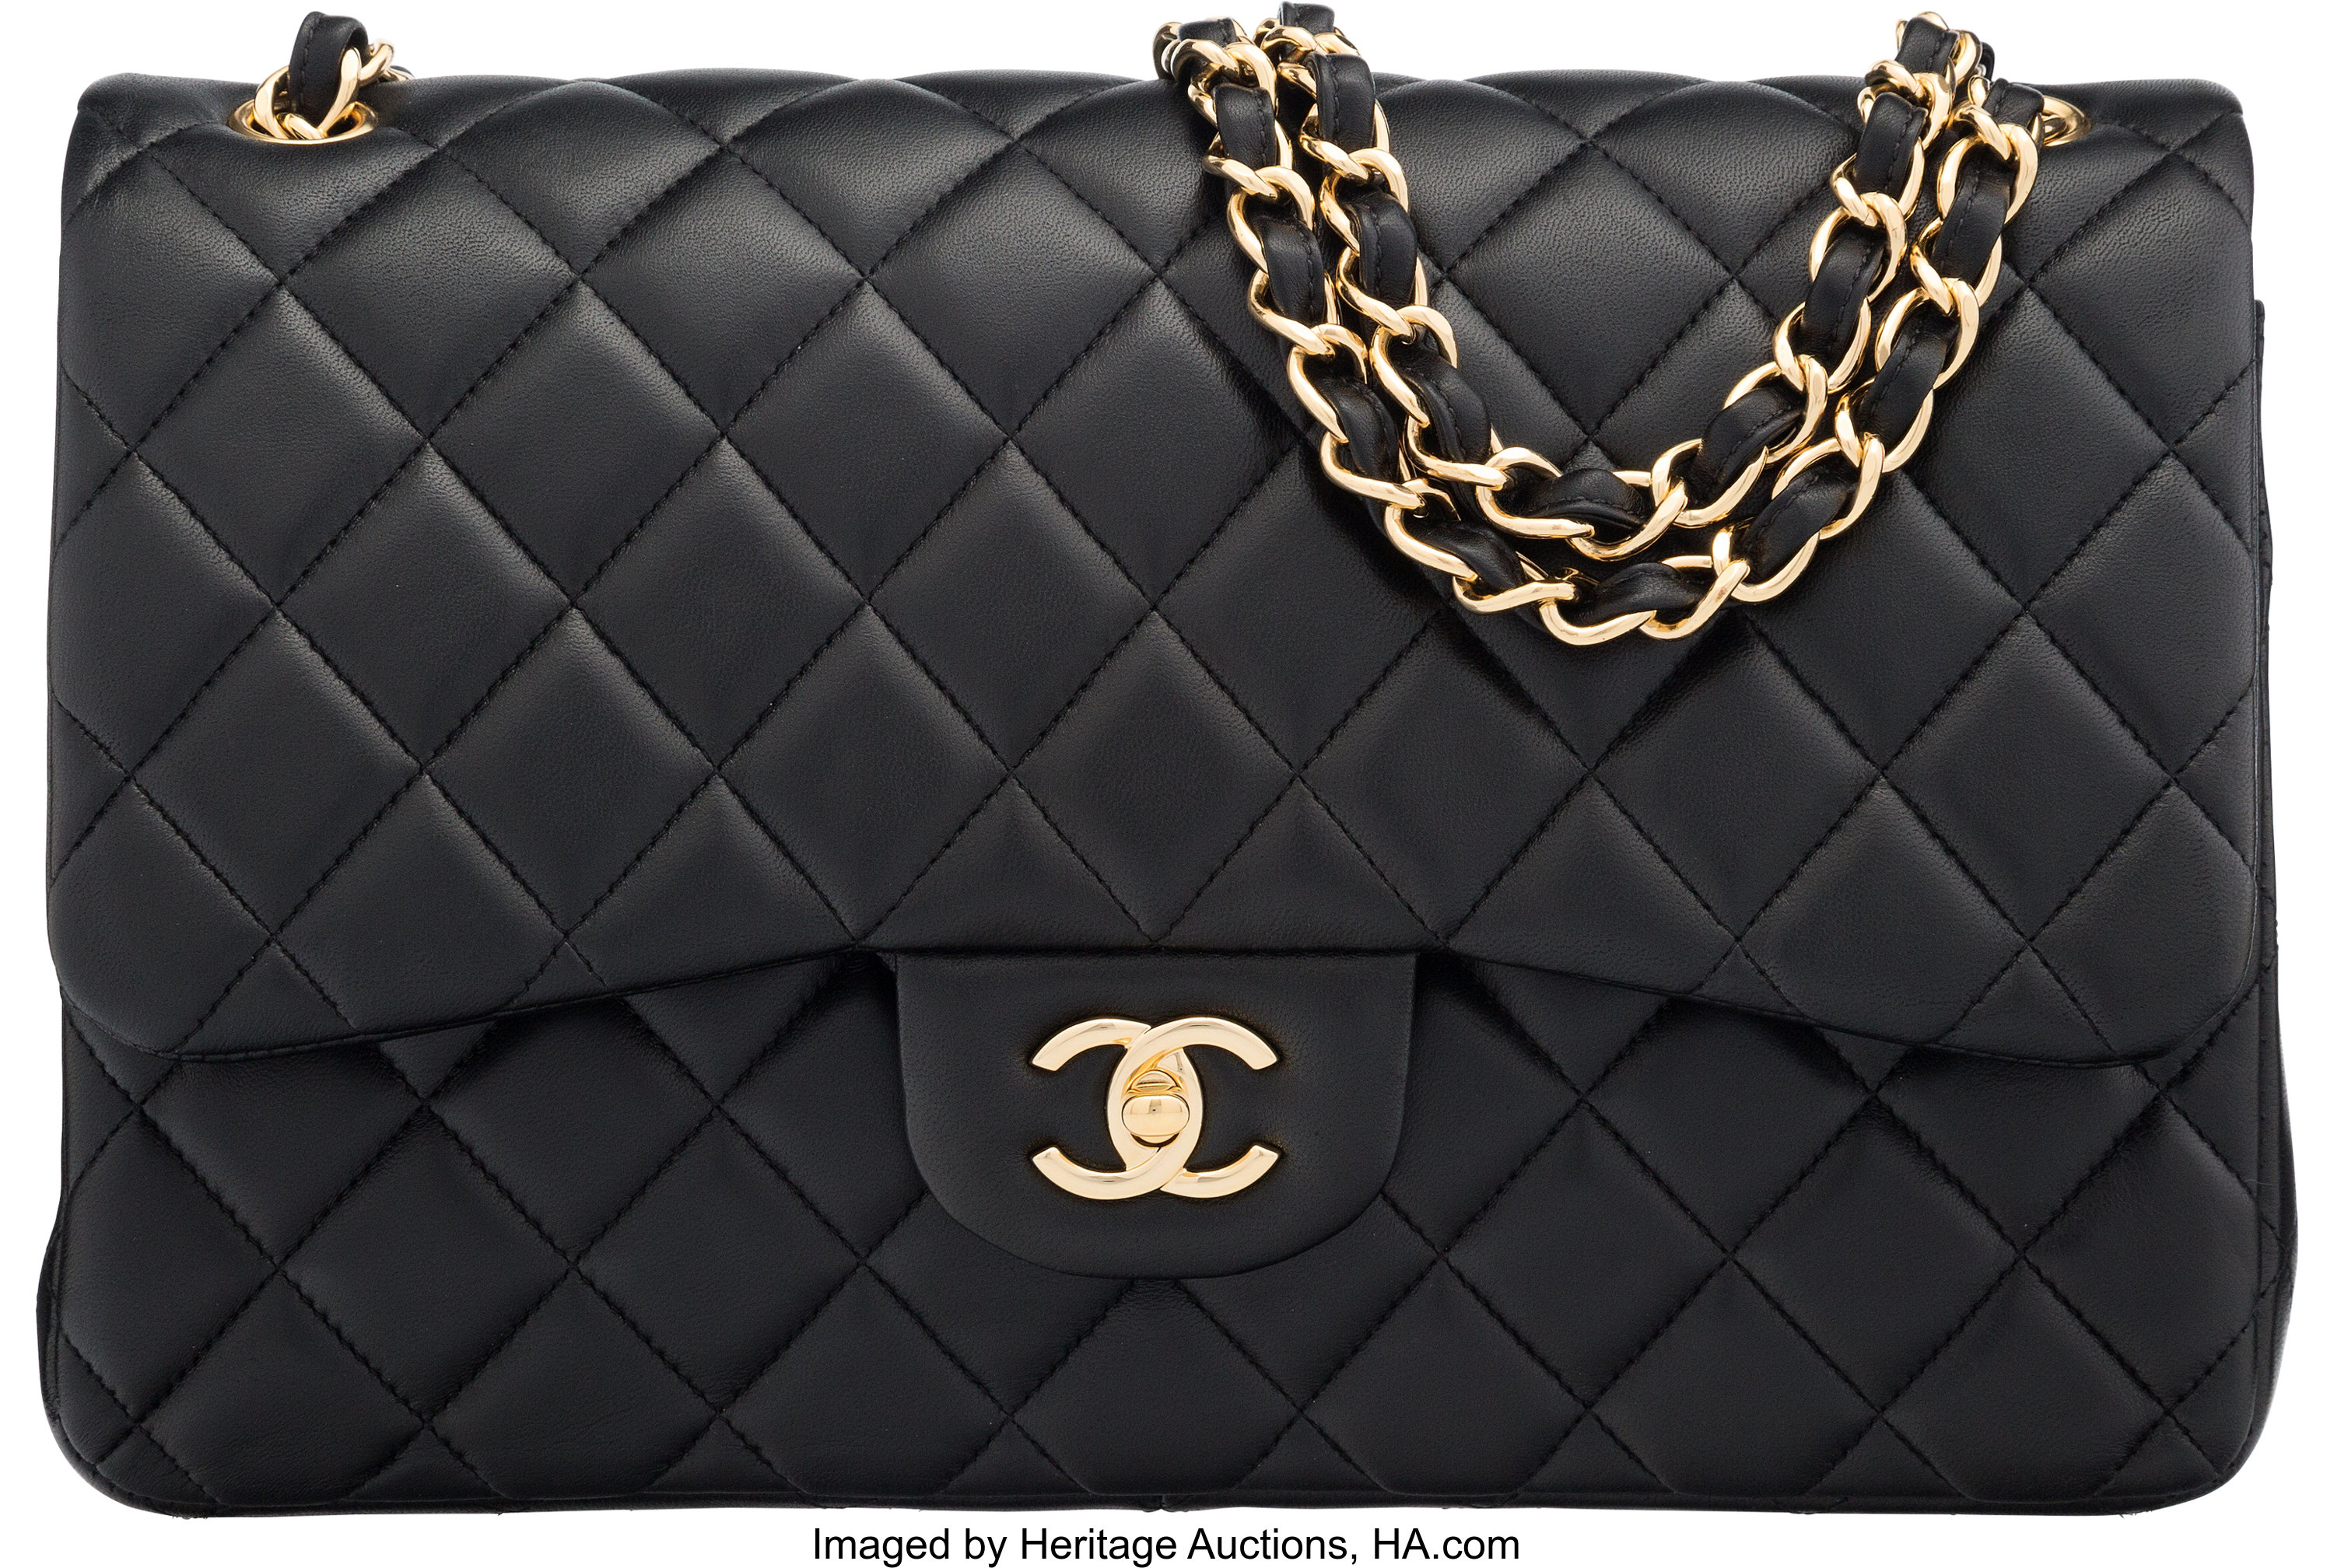 6d49e2bc8 Chanel Black Quilted Lambskin Leather Jumbo Classic Double Flap Bag | Lot  #58058 | Heritage Auctions